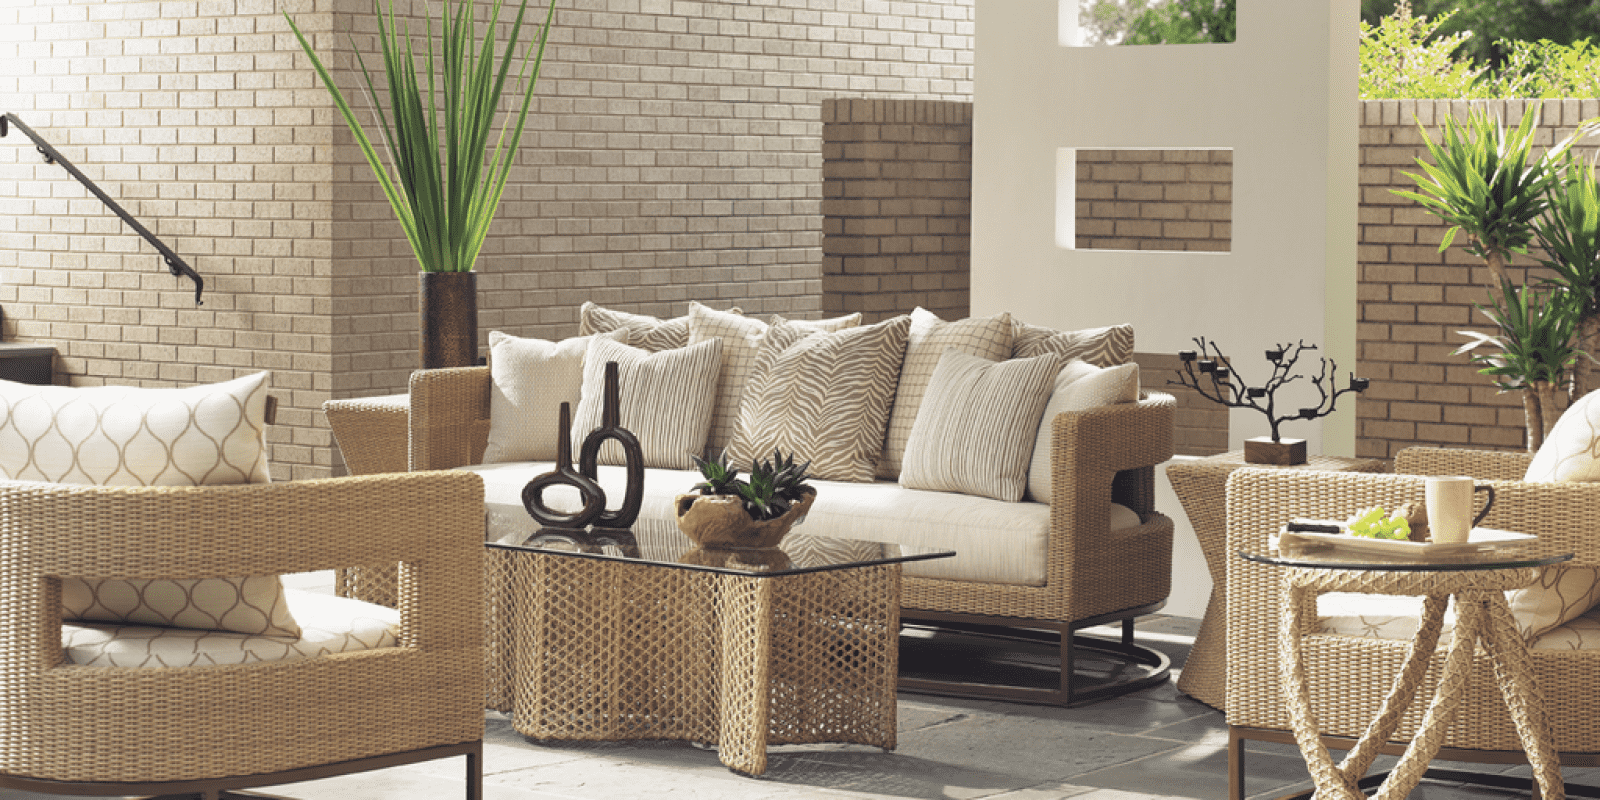 Outdoor Patio Design Specialist | American Casual Living on Casual Living Patio id=52419